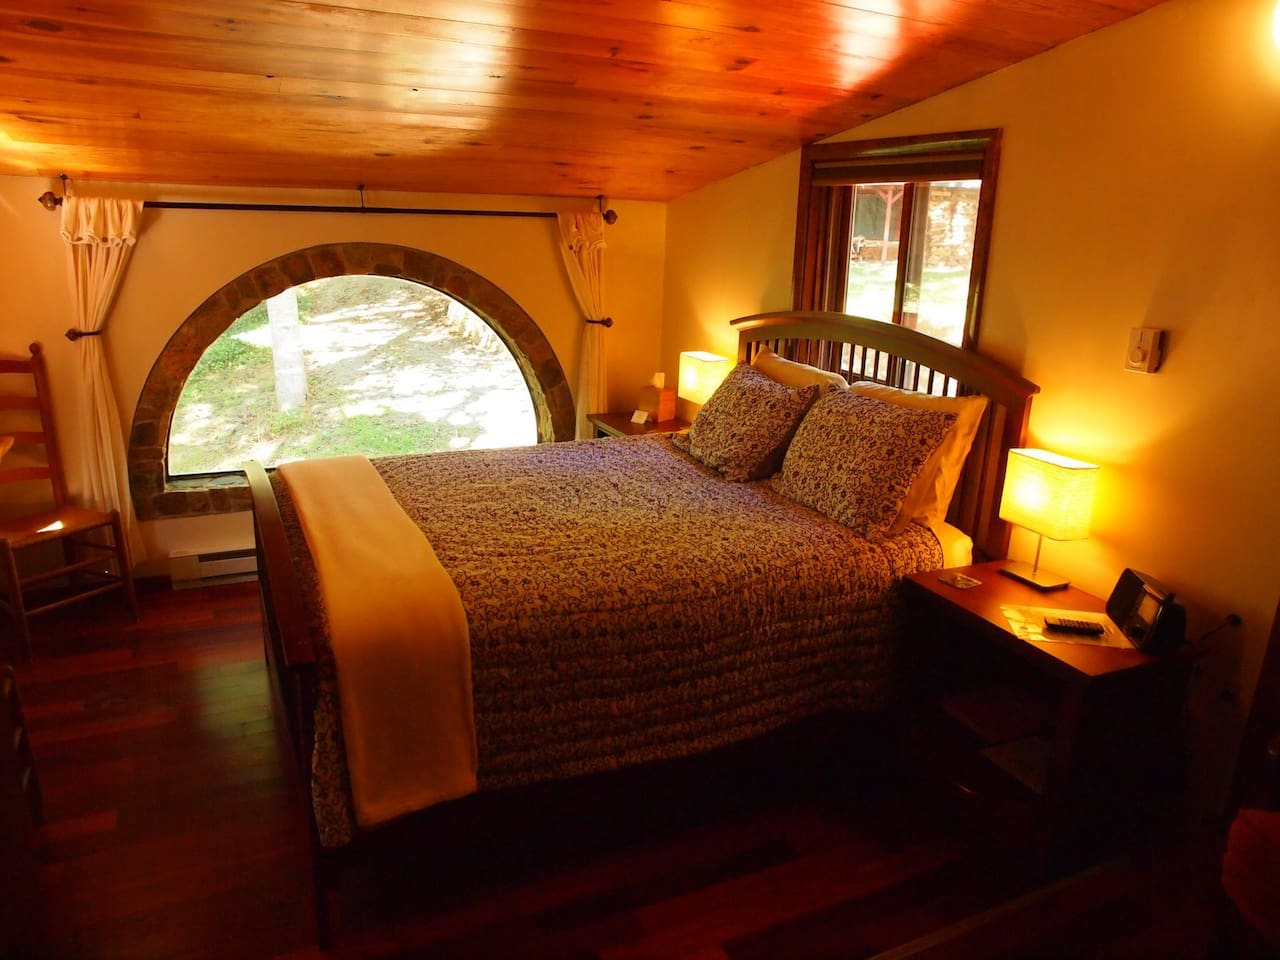 Queen walnut bed looking out through the stone arch window into the woods.